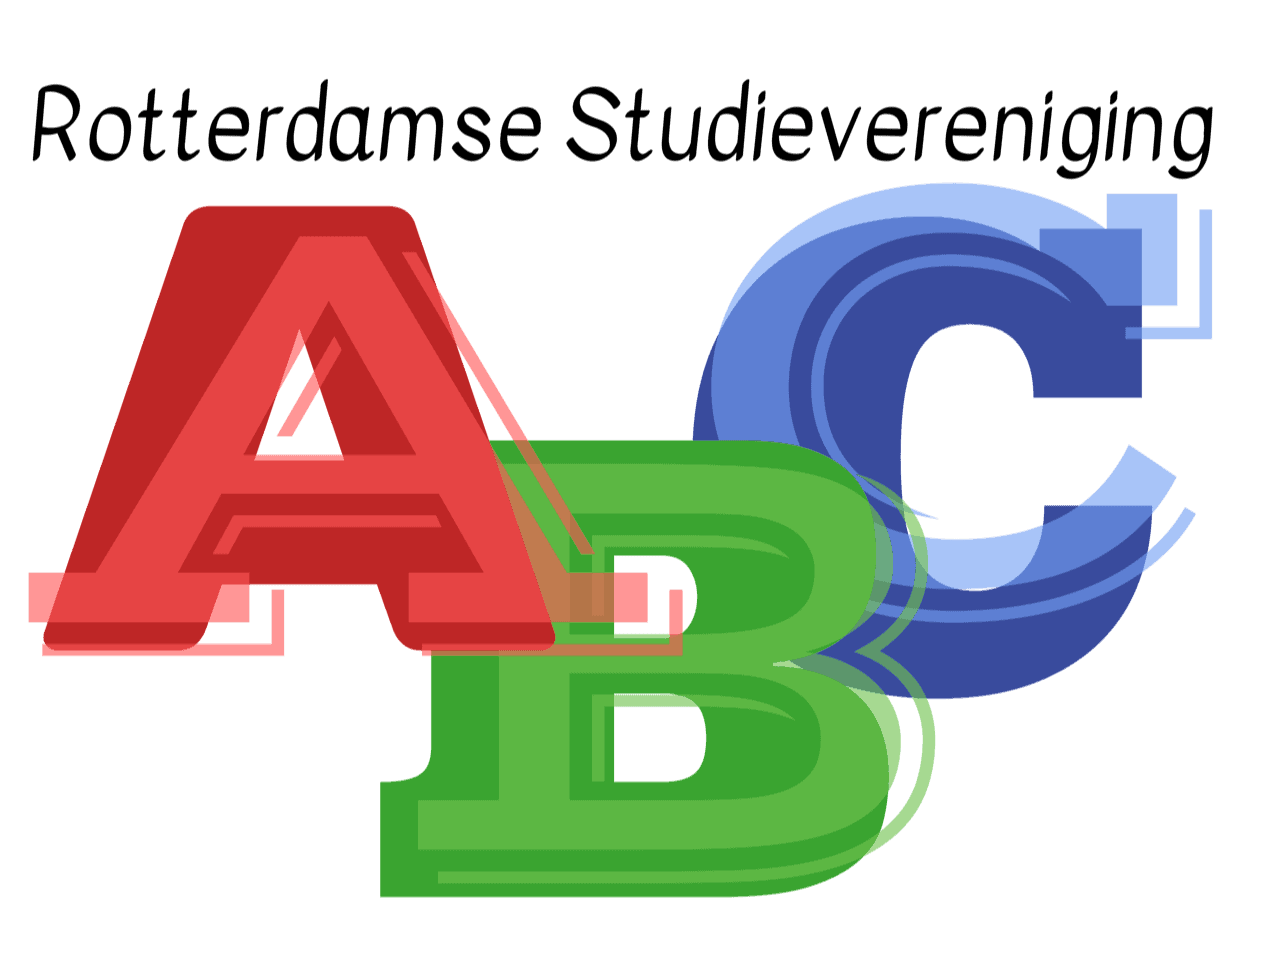 Rotterdamse Studievereniging ABC